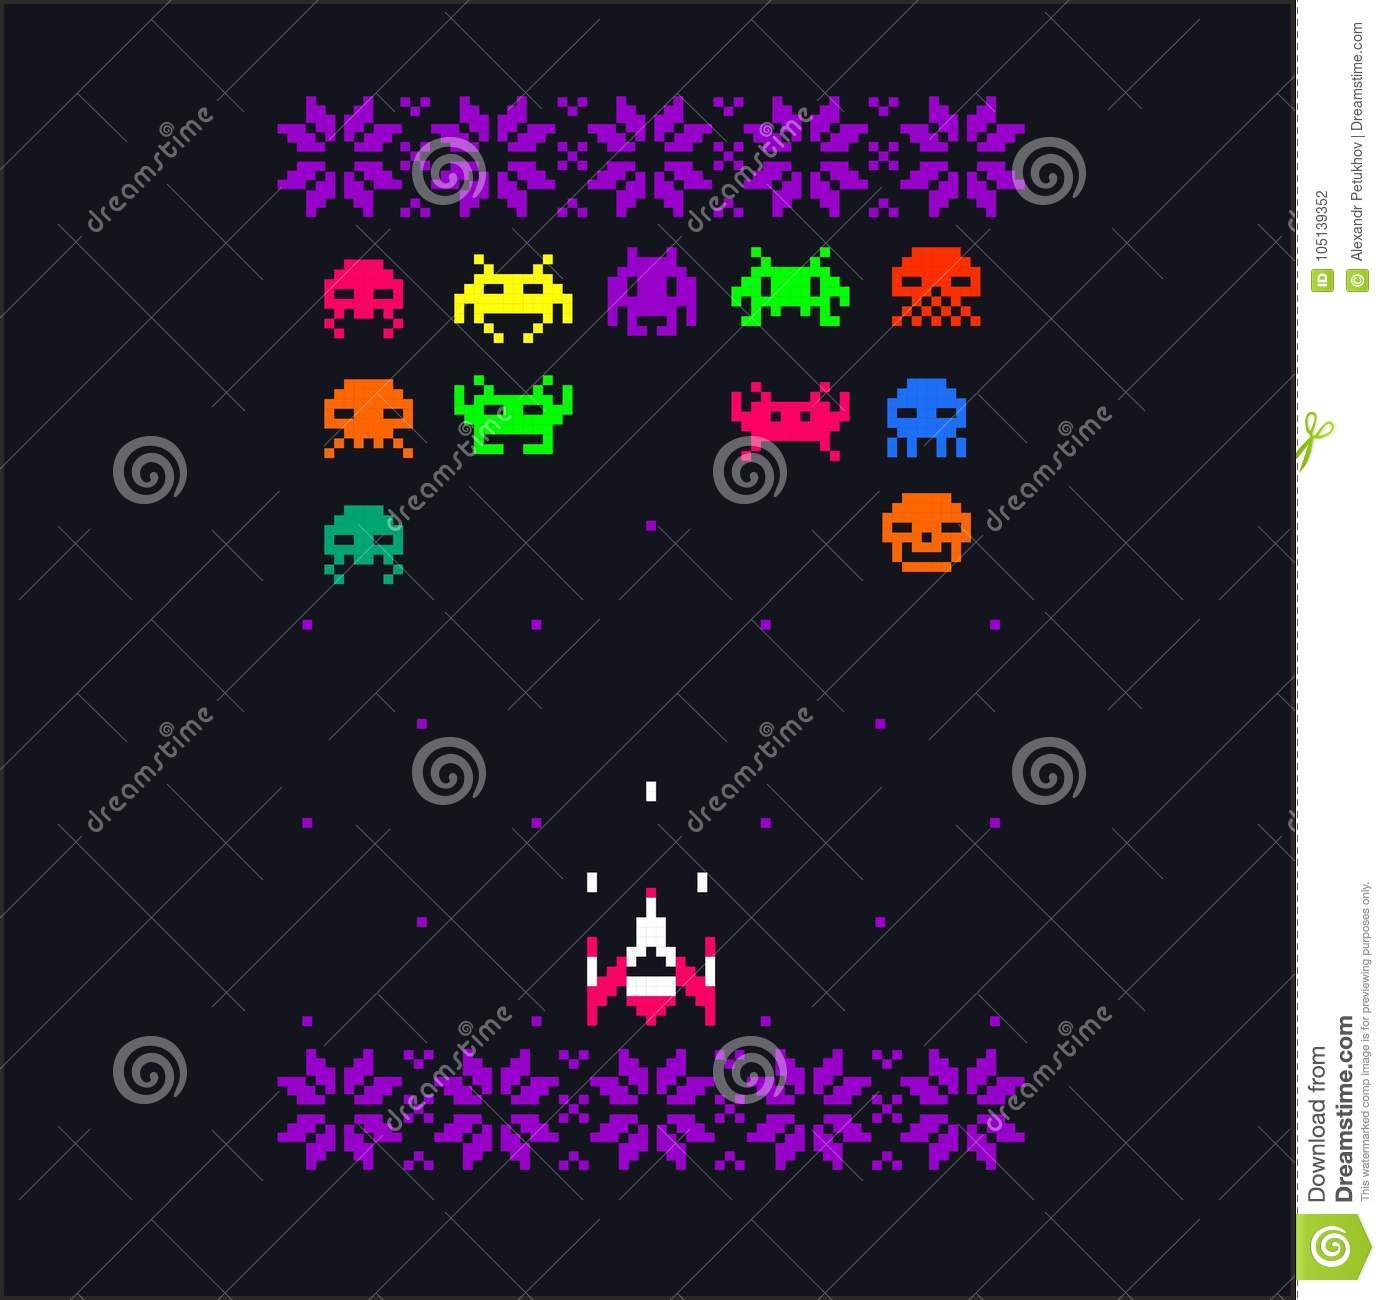 Video Game Bit Space Aliens Spaceship Pixel Art With Embroidery - Spaceship design game